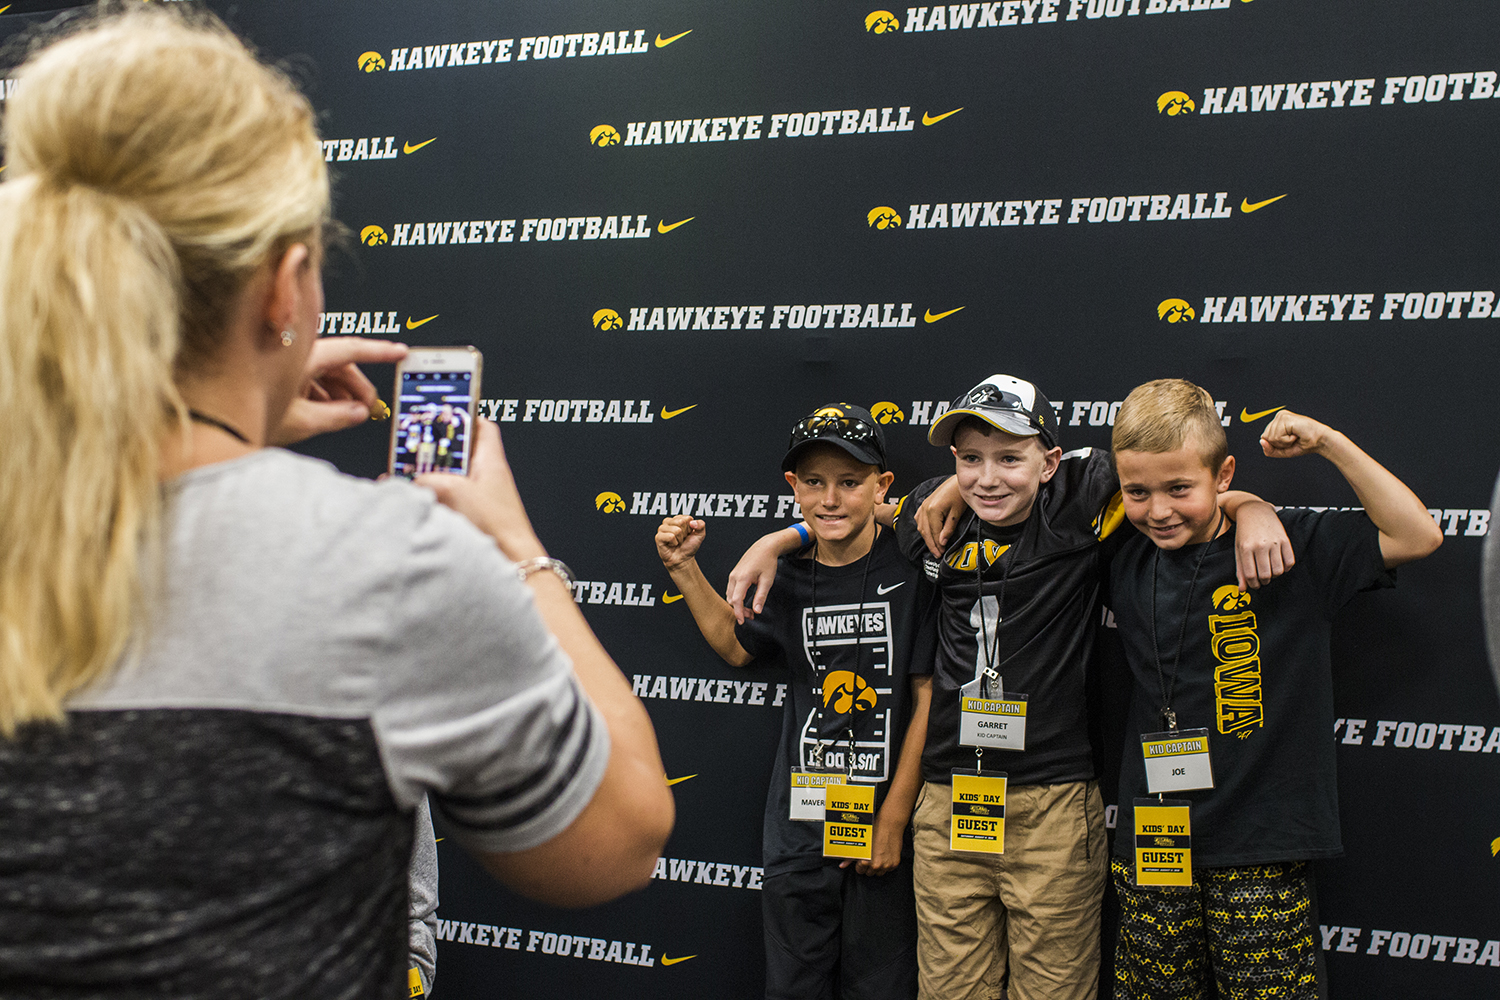 Kid+Captain+Garret+Schuster+has+a+picture+taken+with+his+family+during+Iowa+Football+Kids%27+Day+at+Kinnick+Stadium+on+Saturday%2C+Aug.+11%2C+2018.+